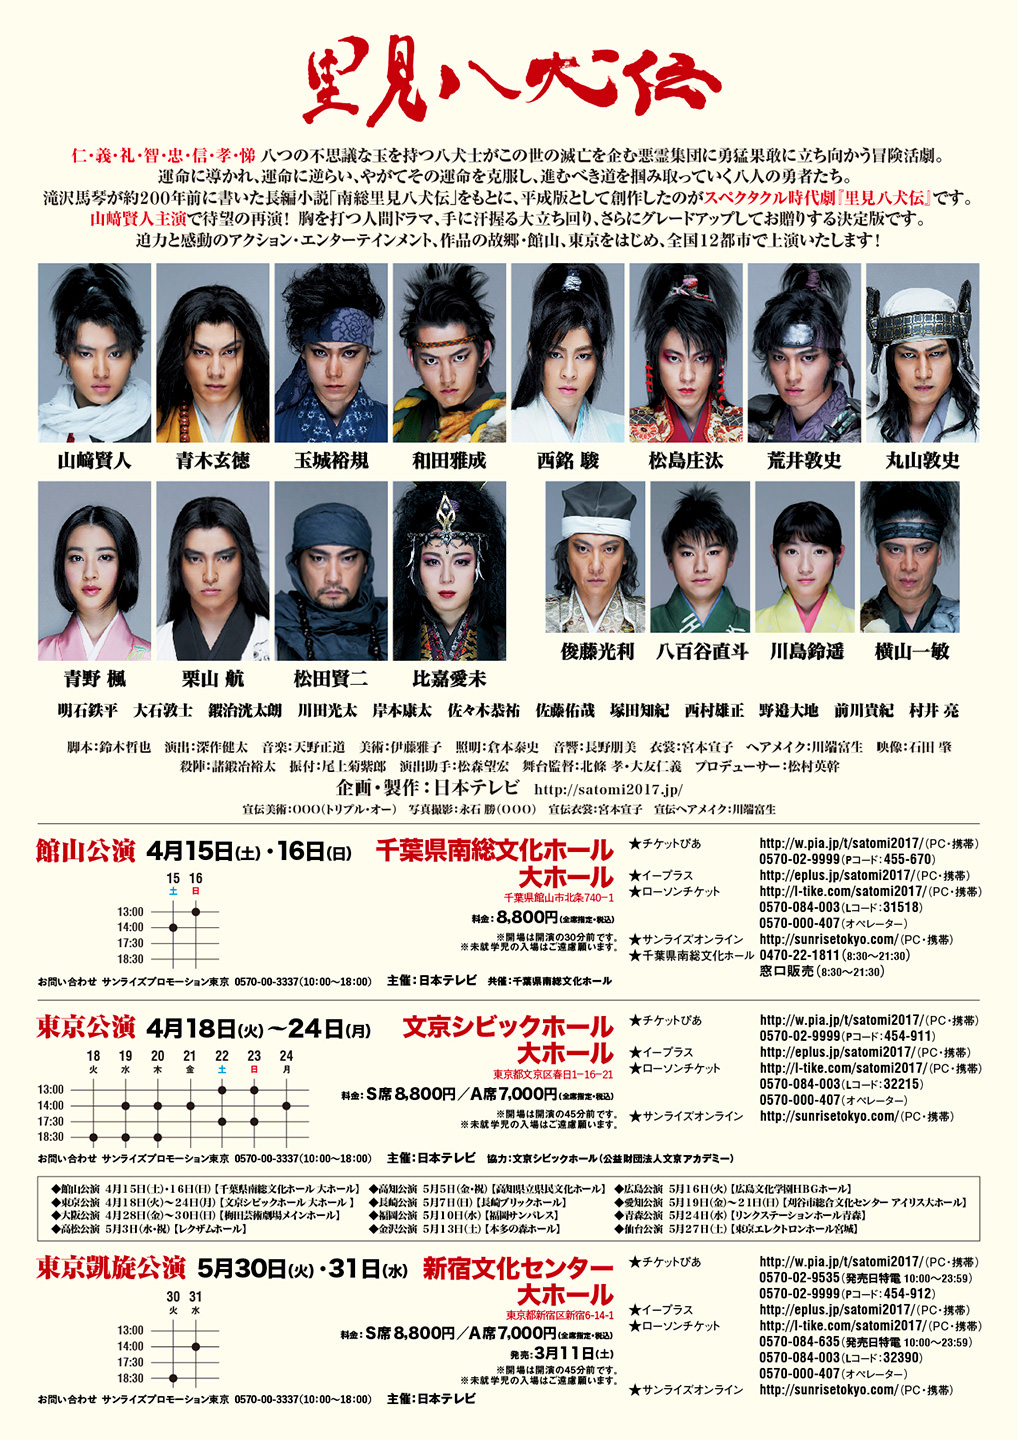 Flyer for Satomi Hakkenden detailing casting information and stage performance dates, prices, and locations.